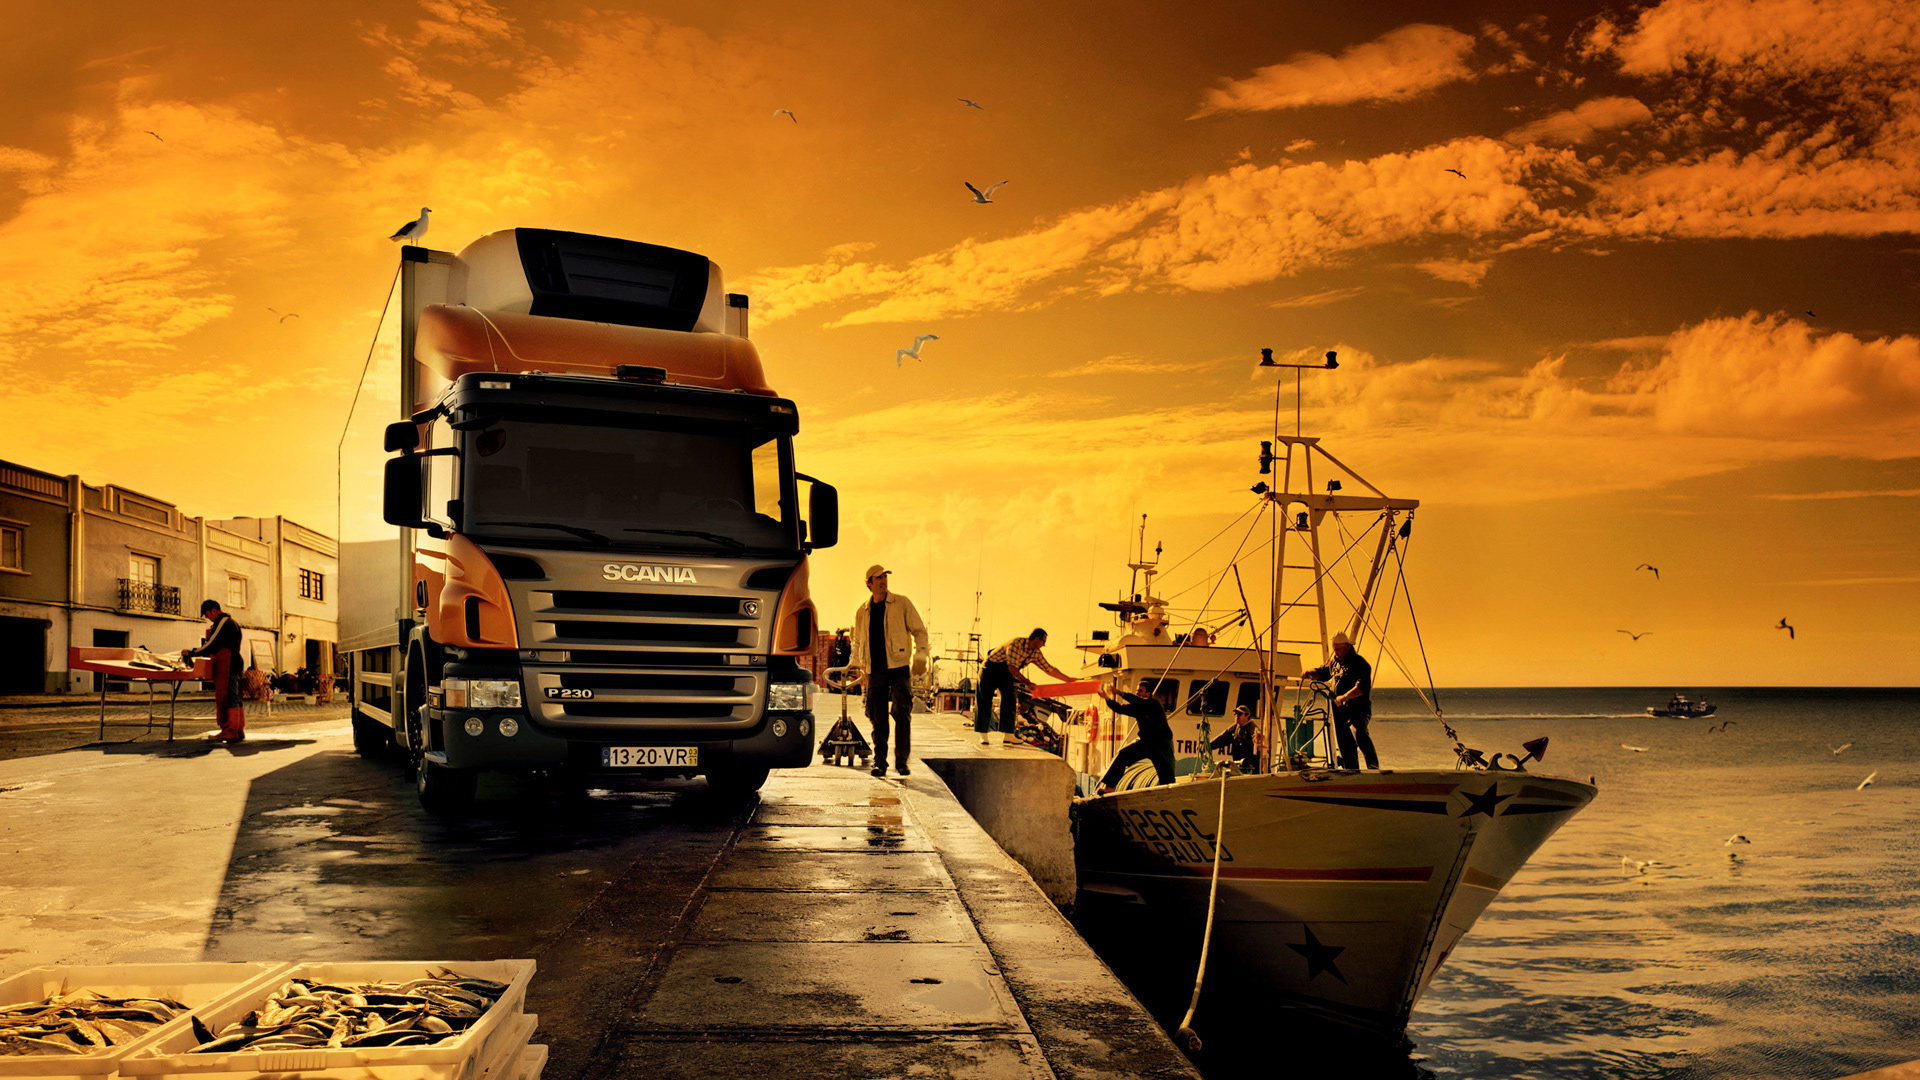 Awesome Orange Scania Truck Wallpaper PC Wallpaper with 1920x1080 1920x1080